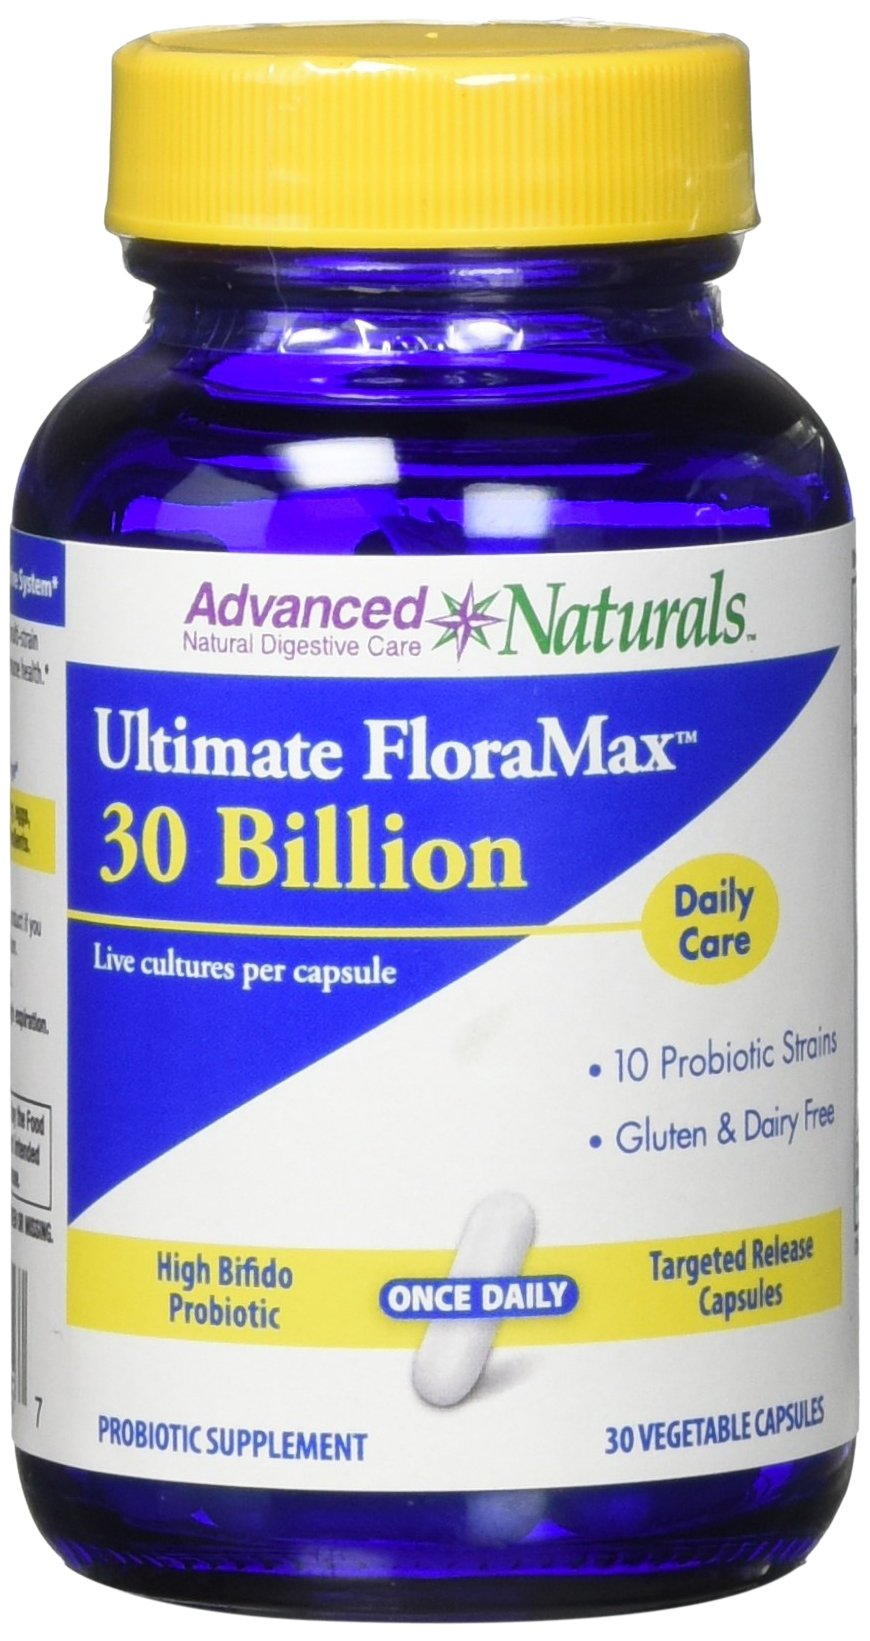 Advanced Naturals Ultimate Floramax 30 Billion Caps, 30 Count